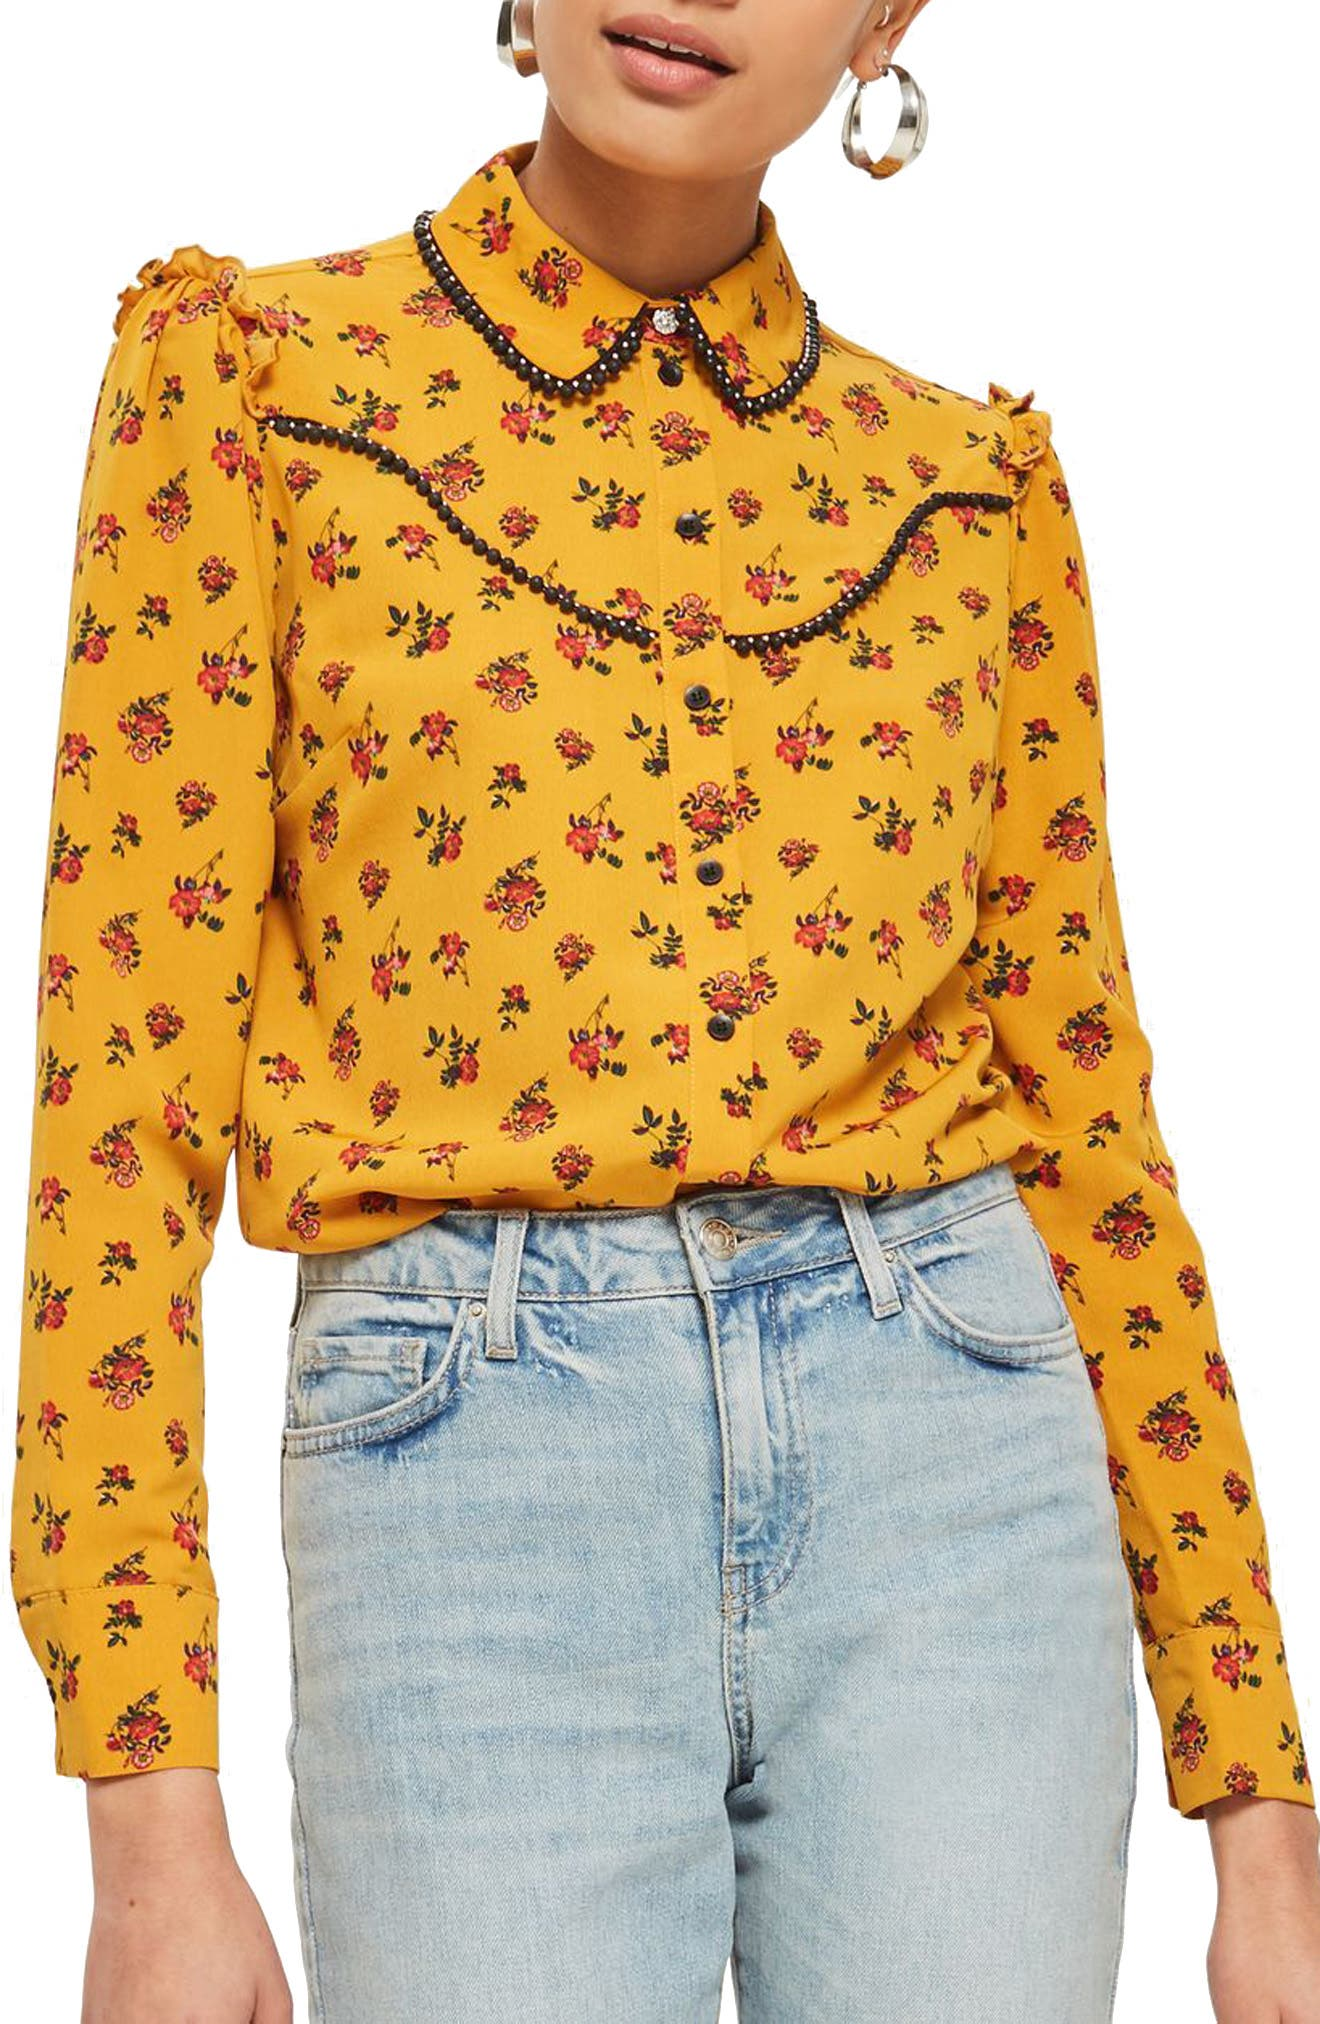 Rodeo Floral Retro Shirt,                             Main thumbnail 1, color,                             701